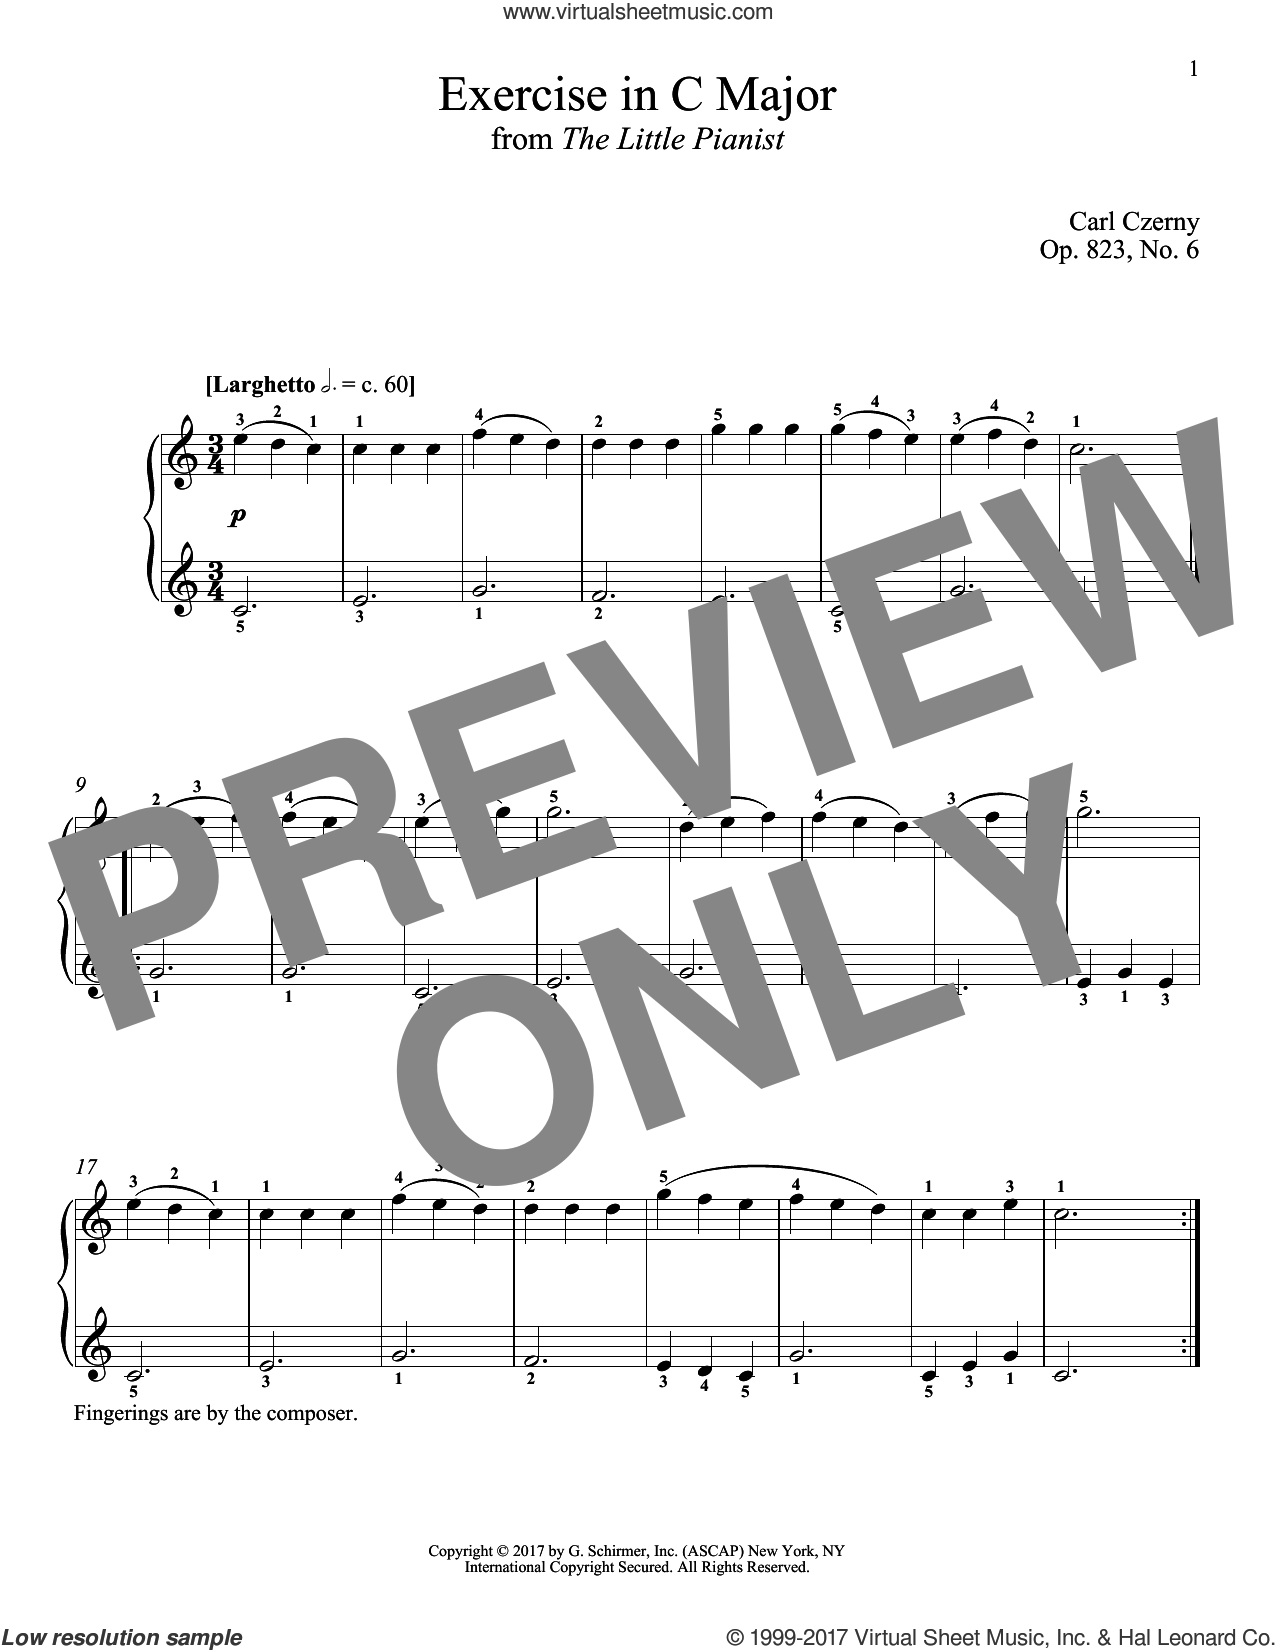 Exercise in C Major, Op. 823, No. 6 sheet music for piano solo by Carl Czerny and Richard Walters, classical score, intermediate skill level